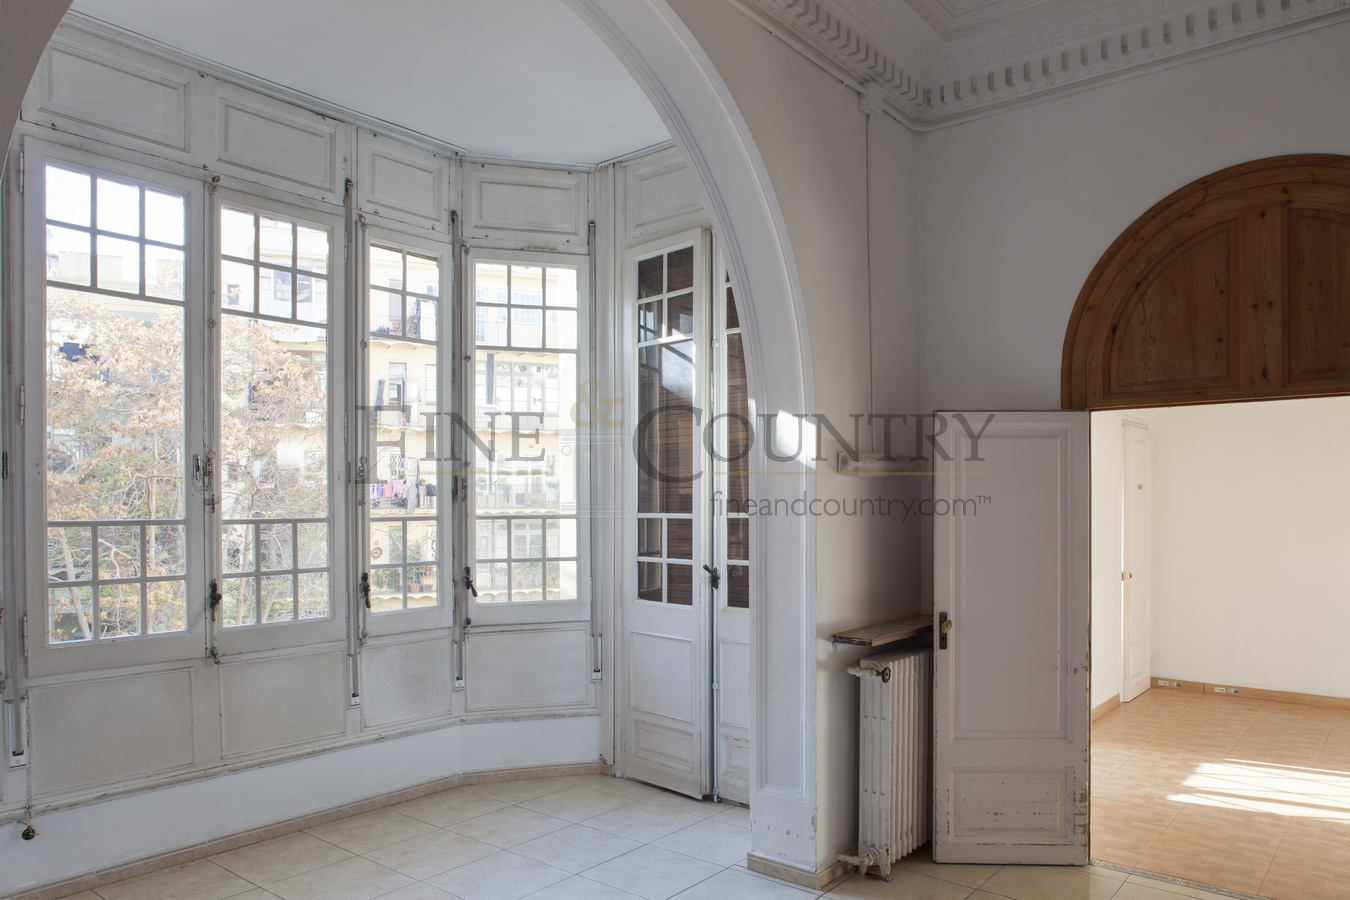 Property detail 7 bedroom flat for sale in eixample derecho barcelona - Creative small spaces property ...